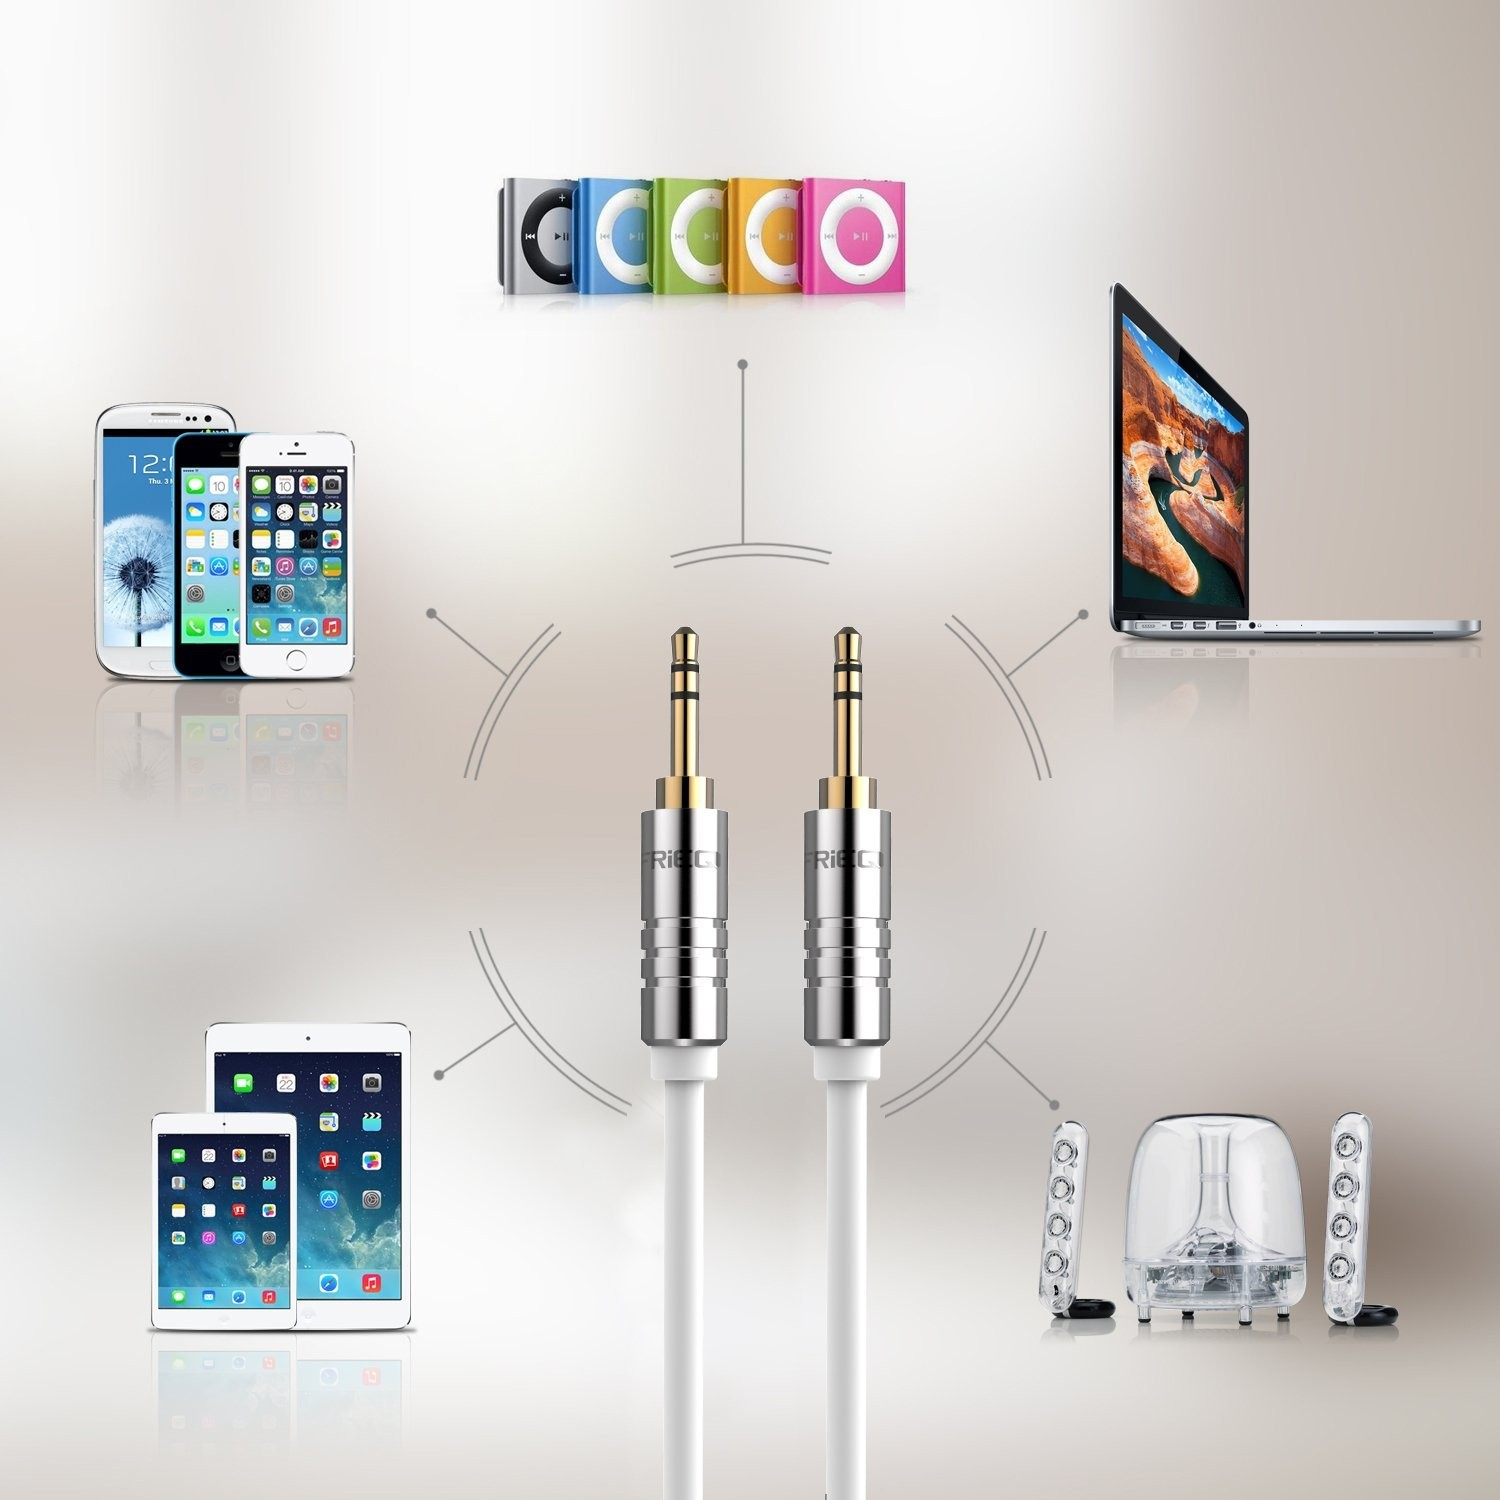 FRiEQ 3.5mm Male To Male Car and Home Stereo TPE Cable Audio Cable (4 Feet/1.2M) Fits Over Tablet & Smart Phone Cases For Apple iPad, iPhone, iPod, Samsung, Android, MP3 Players - White (Plug will be Fully Seated with Phone Case On), B012CD2UIM